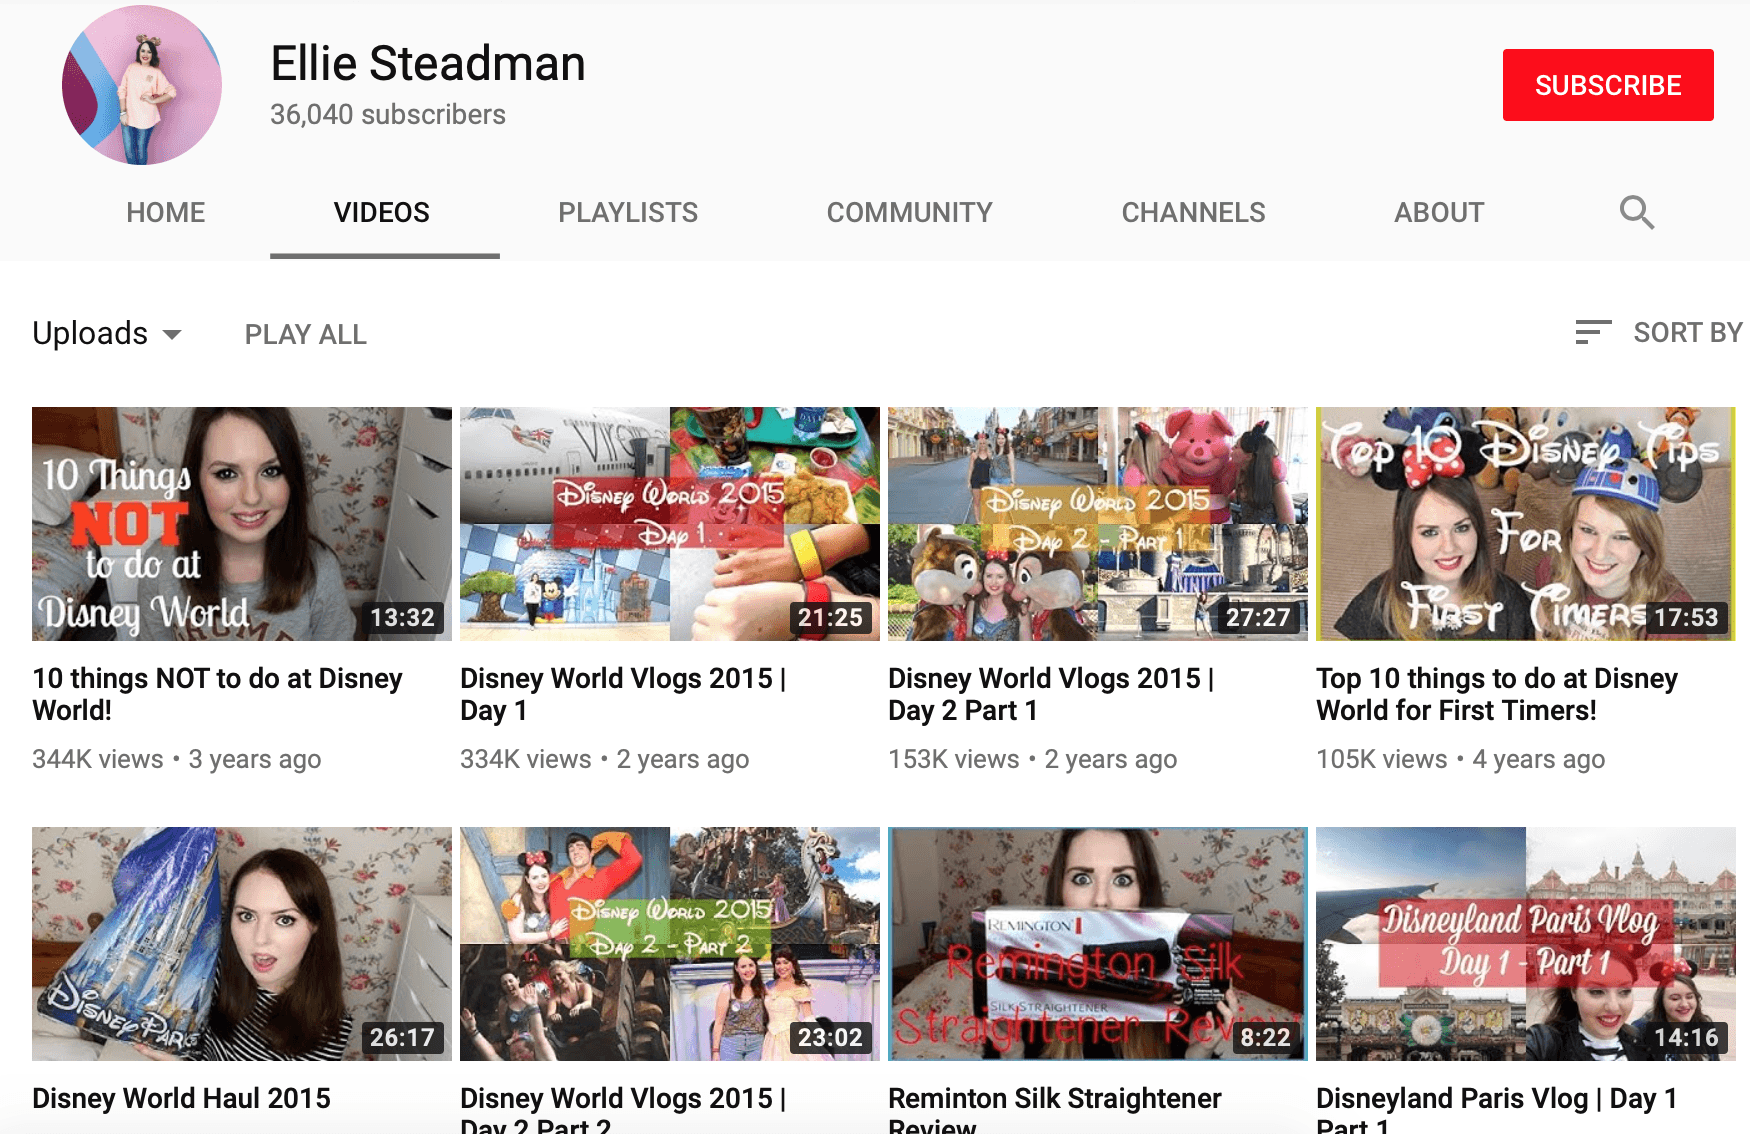 Ellie Steadman YouTube videos